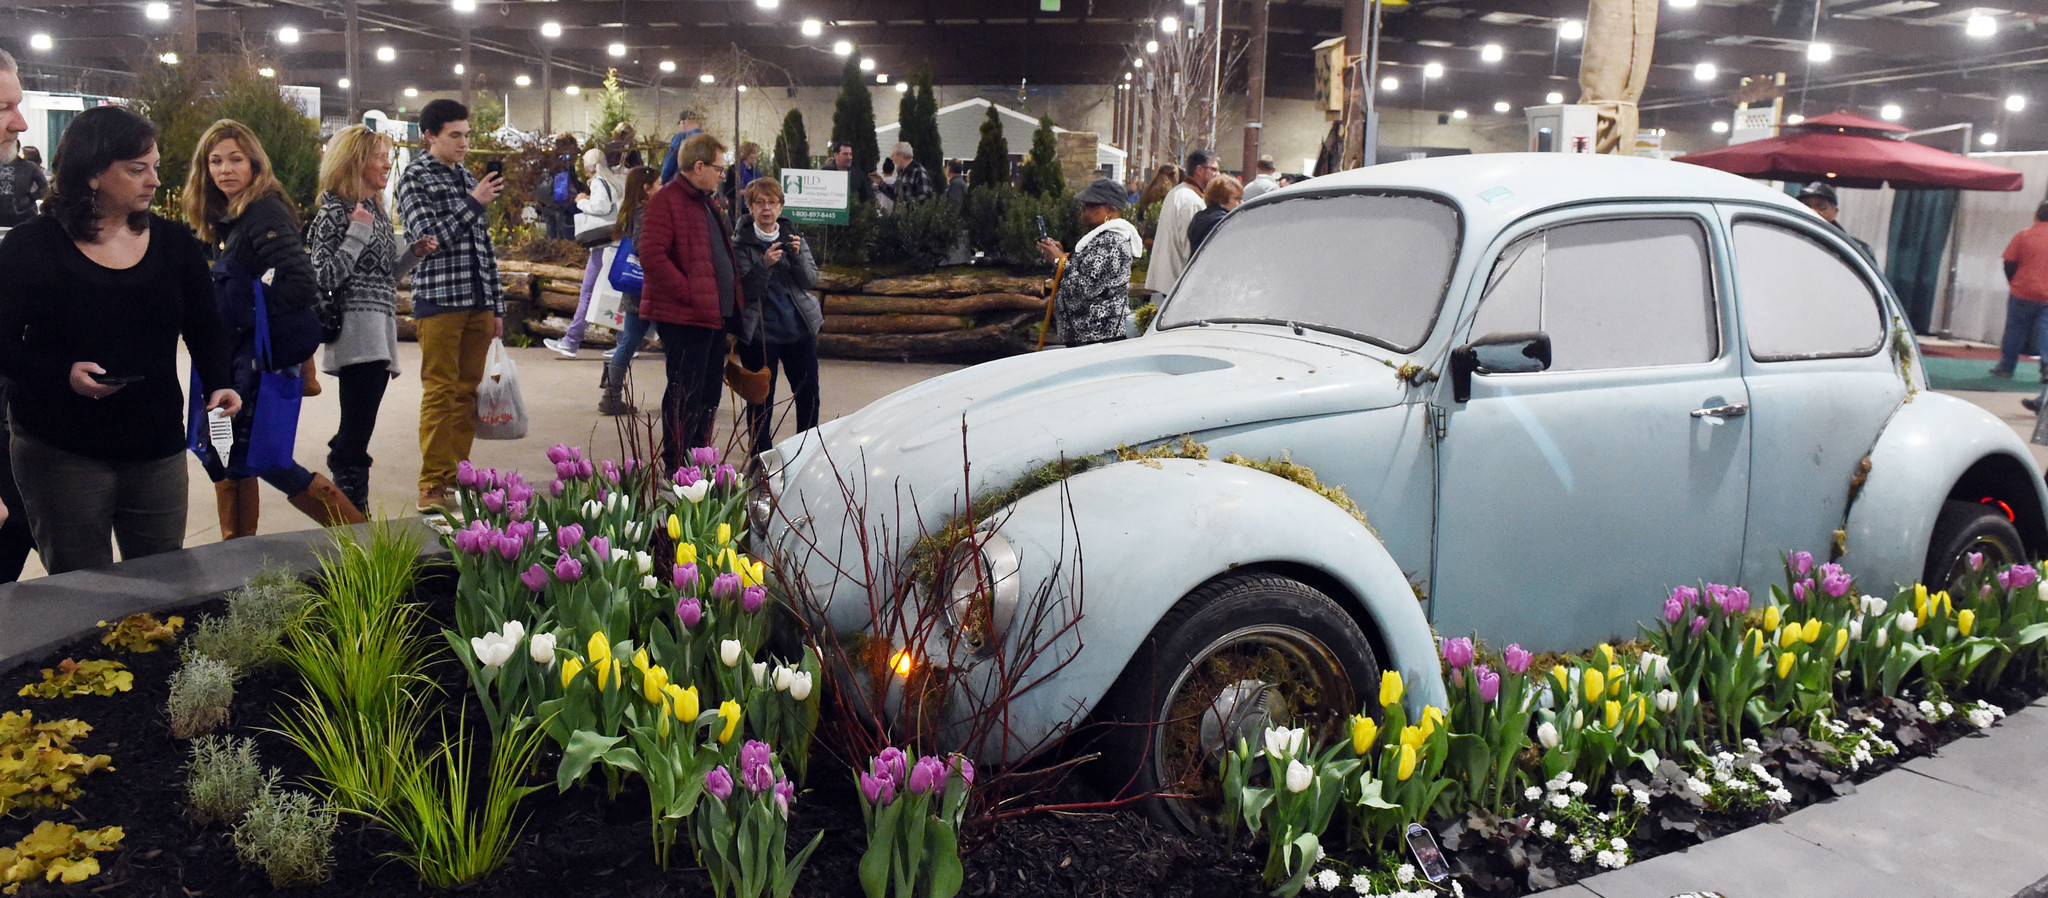 Maryland Home And Garden Show At The Timonium State Fairgrounds - Timonium car show